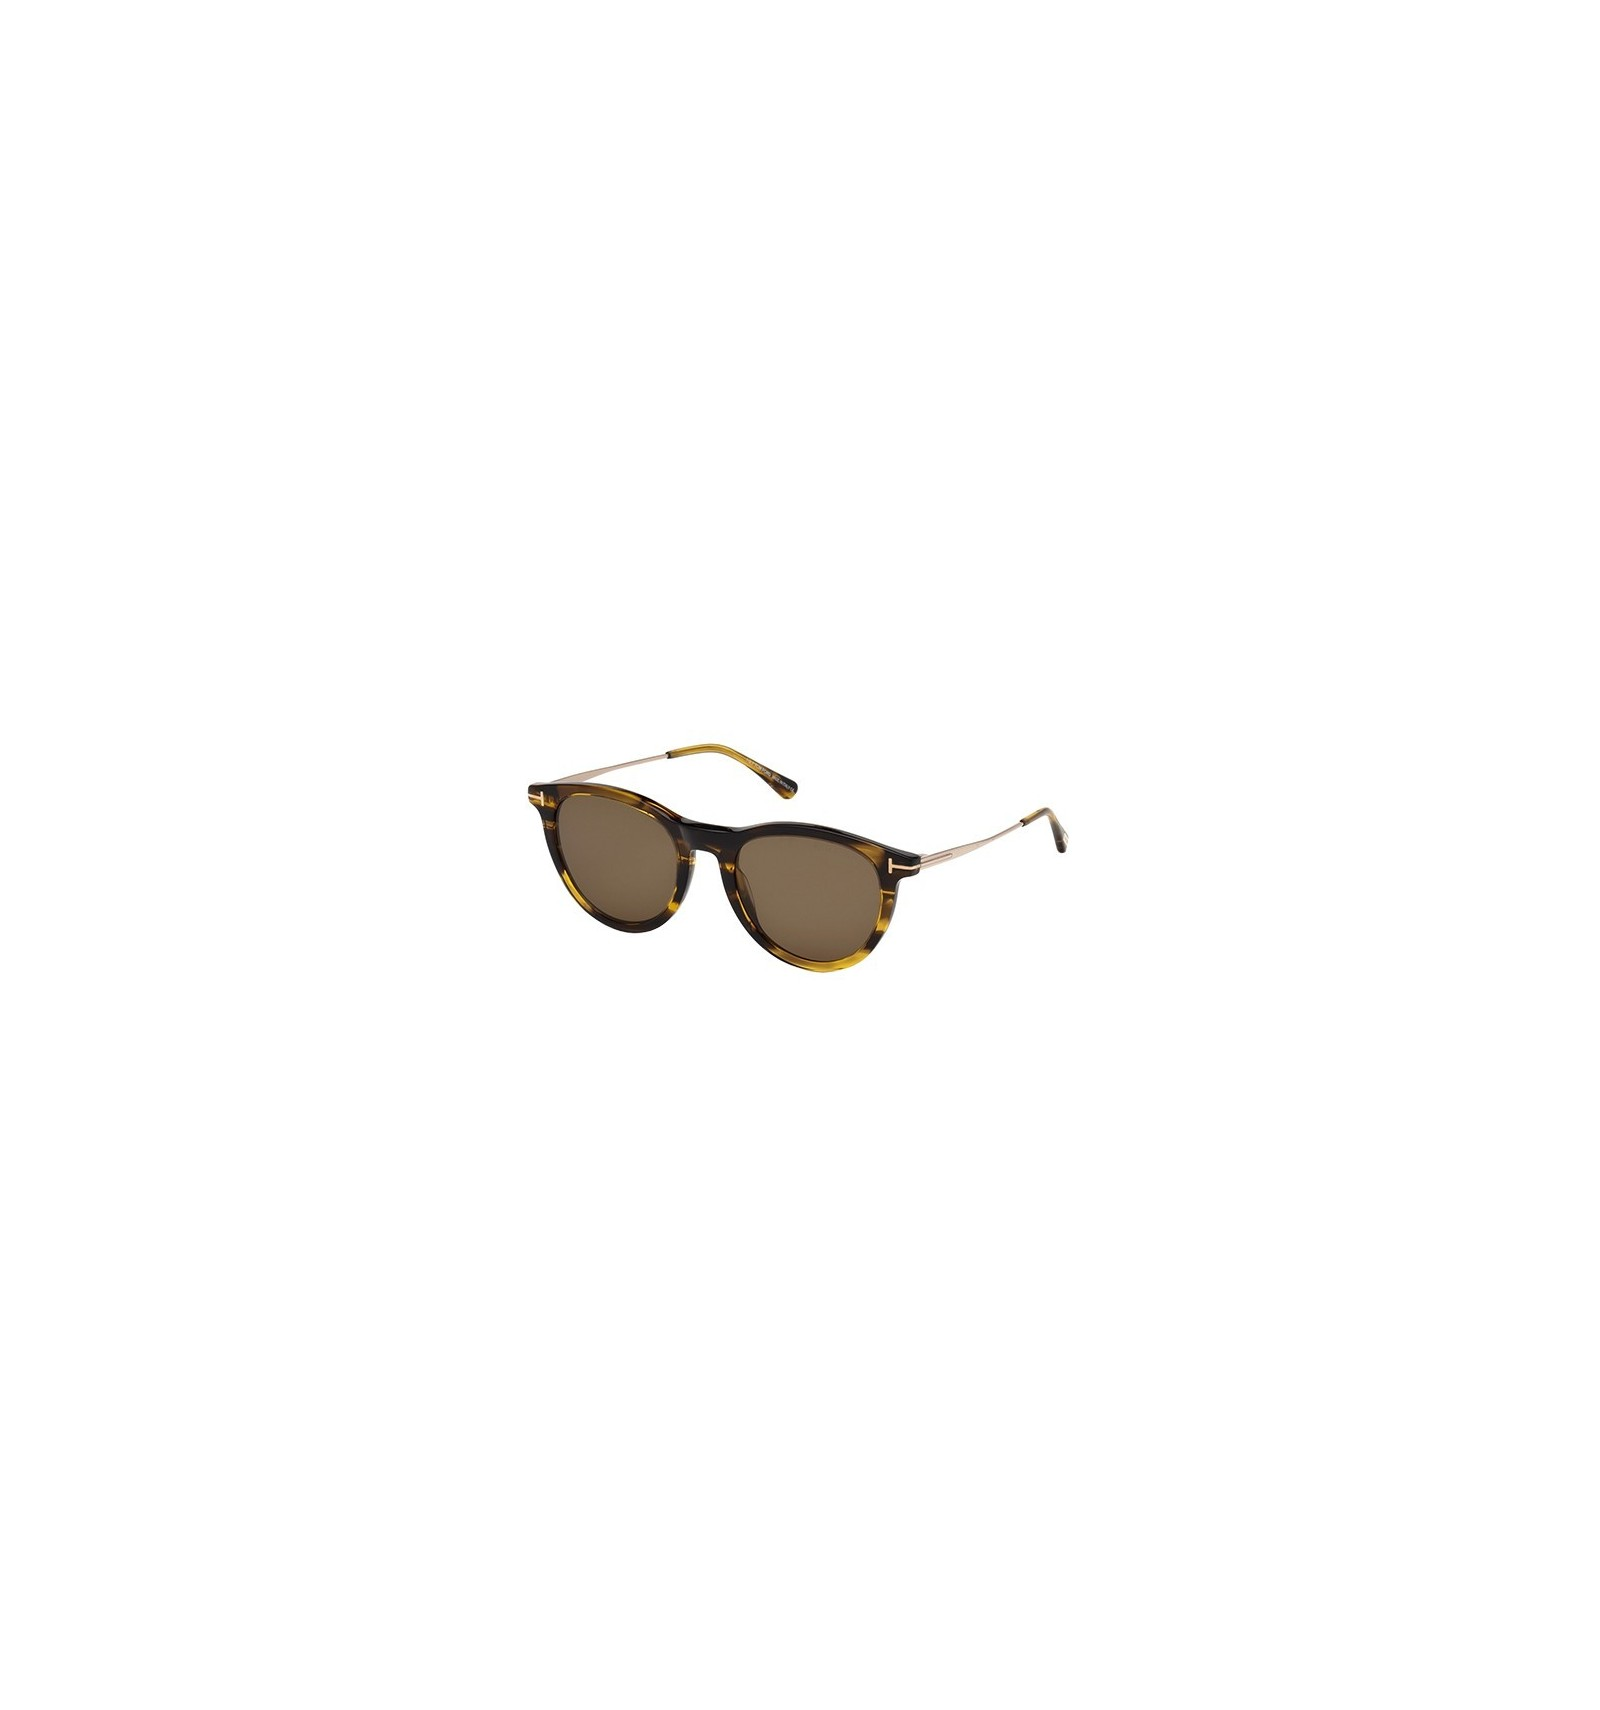 df447d2ef1 Gafas de Sol Tom Ford FT0626 KELLAN Striped Amber - Roviex. Compra ...